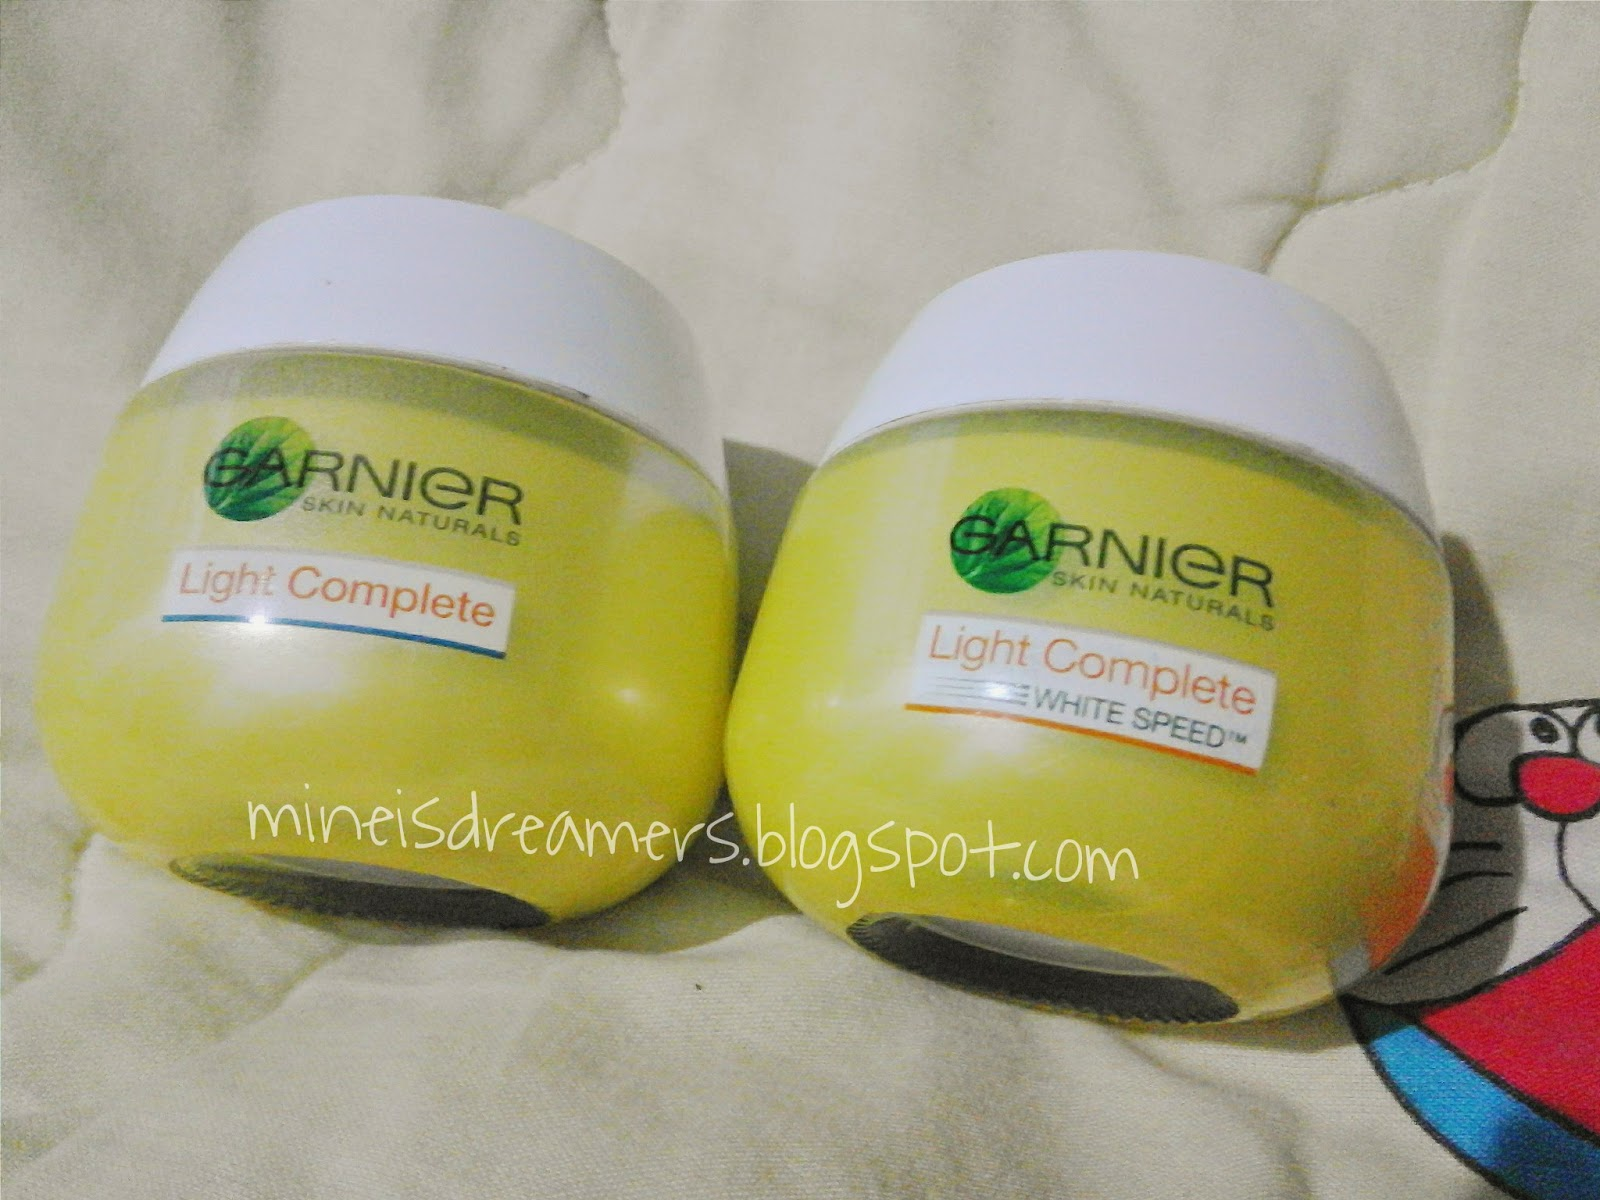 Review Garnier Light Complete White Series Dreamcatcher Lintang Paket Speed Multi Action Serum Cream Whitening